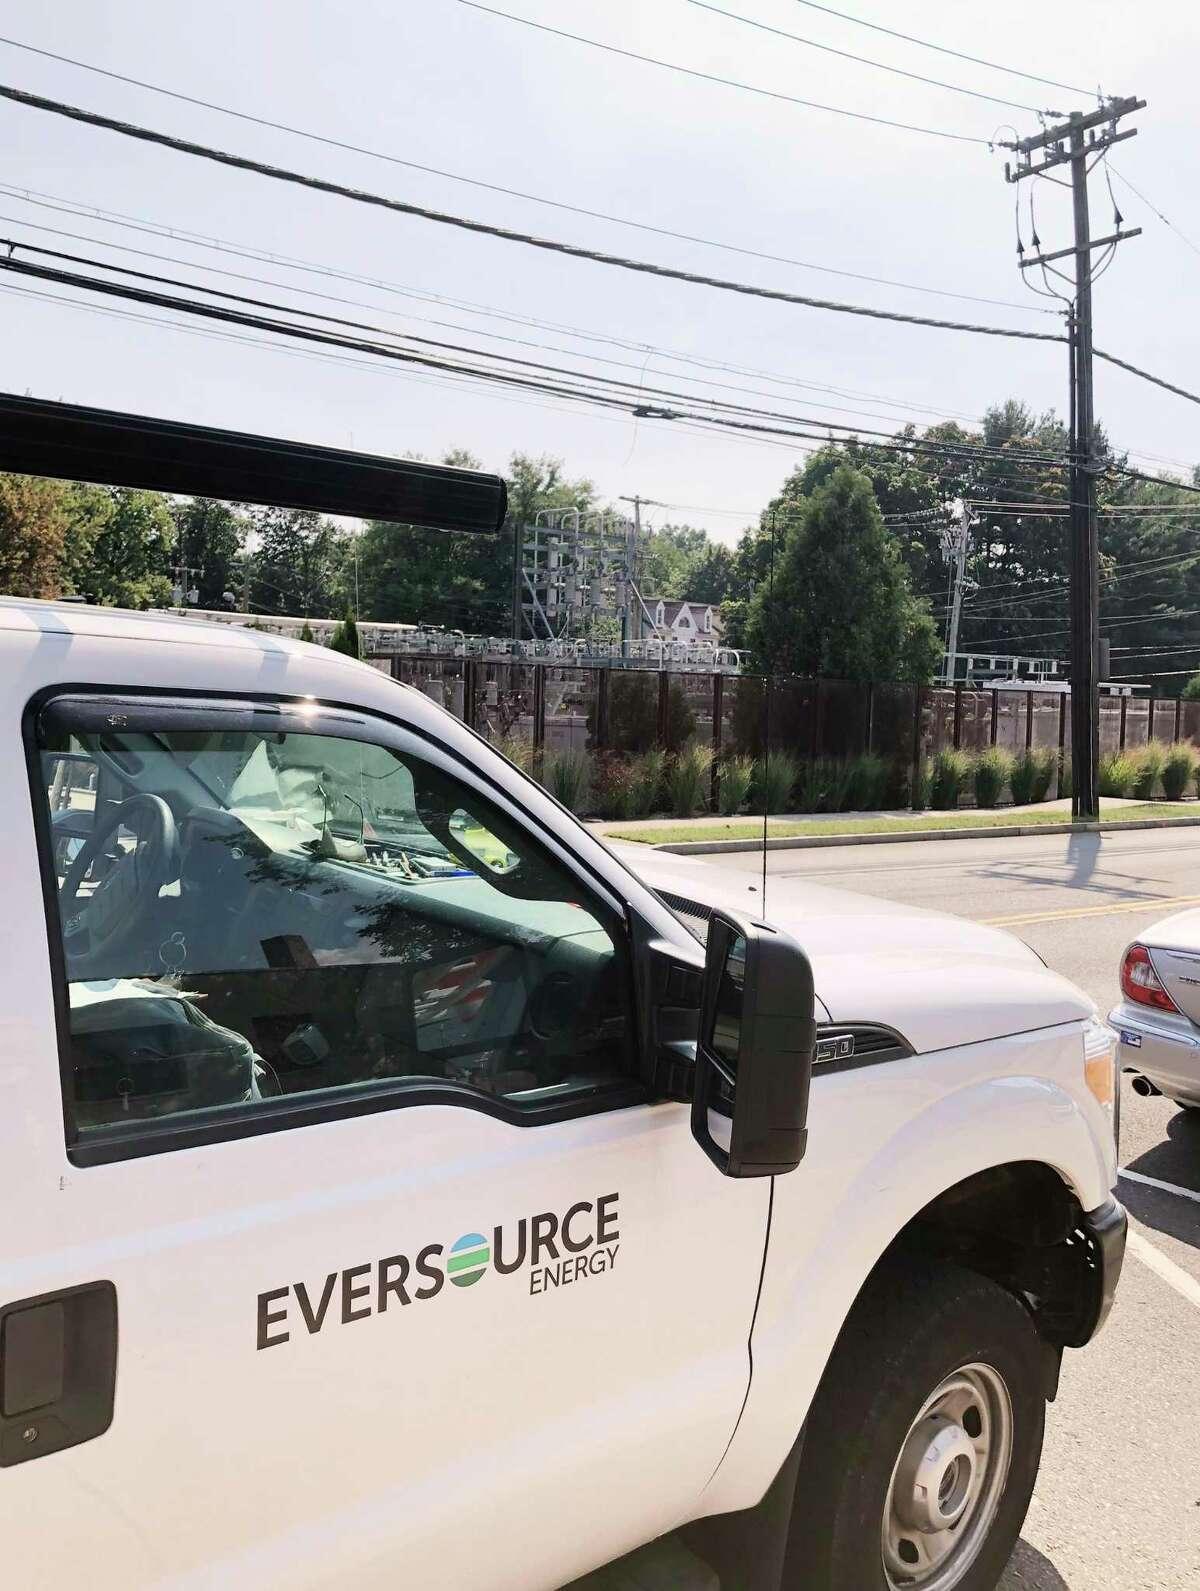 An Eversource Energy truck parked across from the Prospect Street electrical substation in Greenwich, Conn., Wednesday, Sept. 5, 2018. On Tuesday, more than 10,000 Greenwich residents sustained a loss of electricity for nearly two hours according to Eversource Energy.